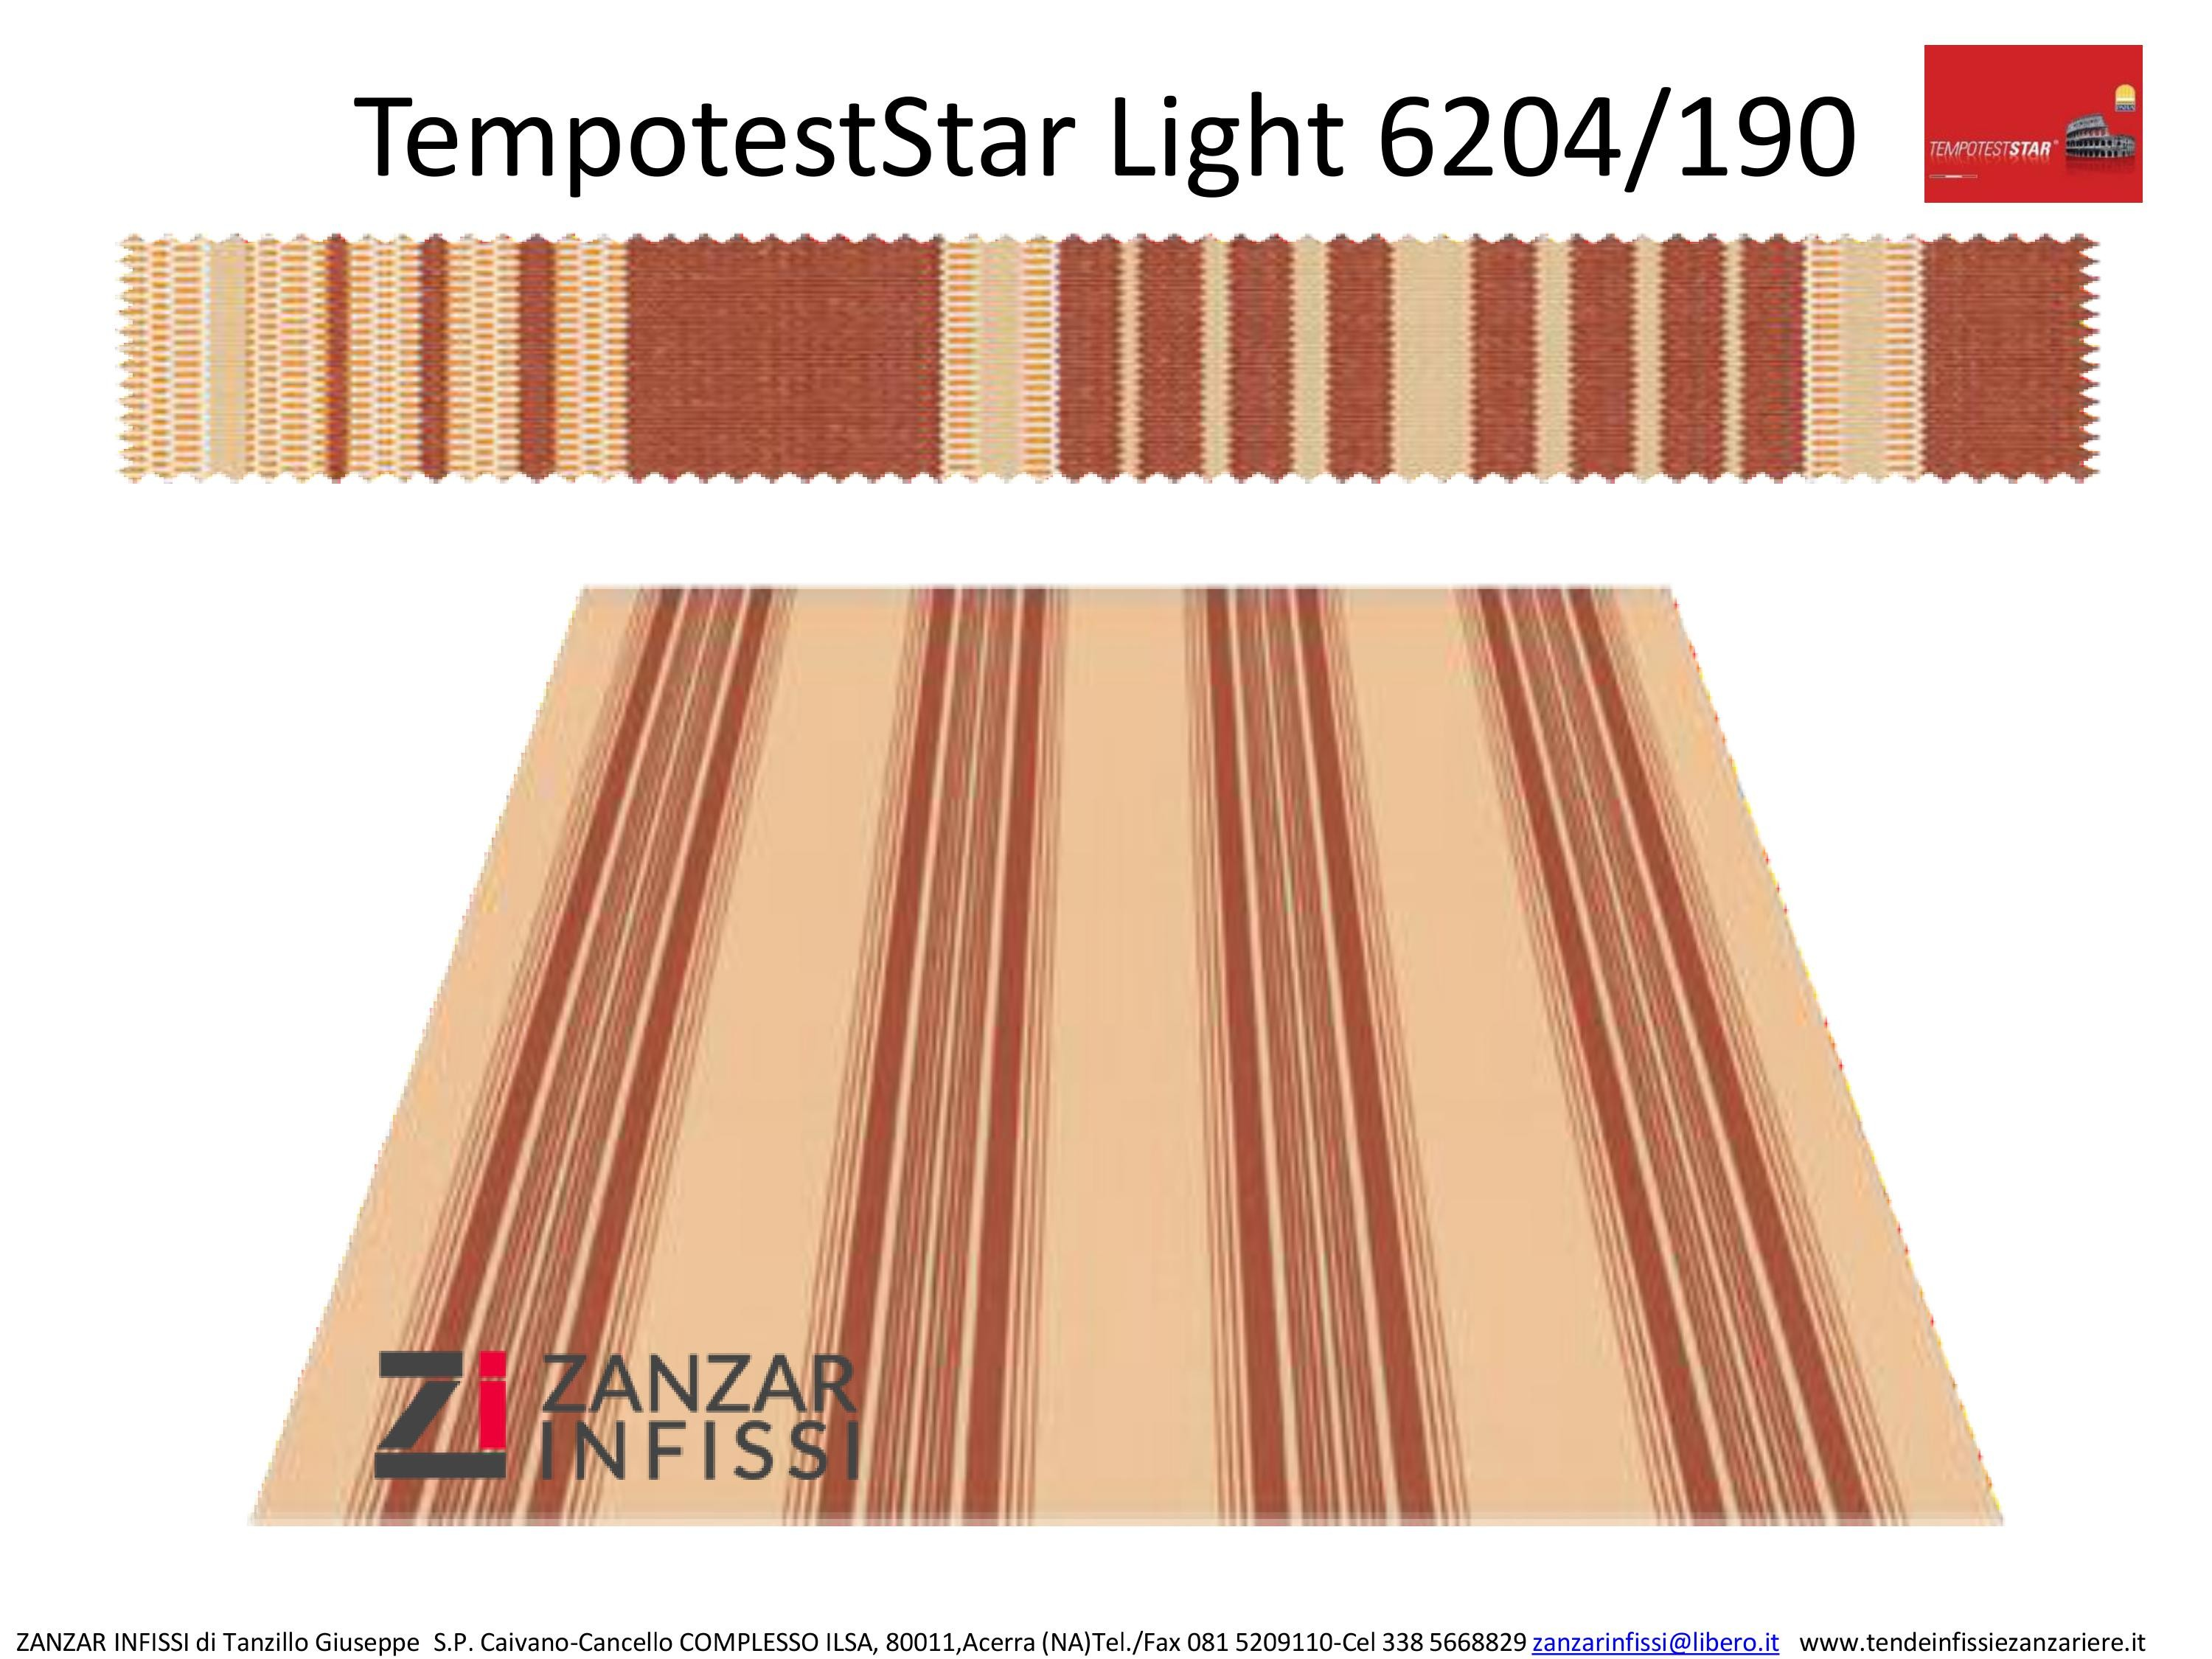 Tempotest star light 6204/190